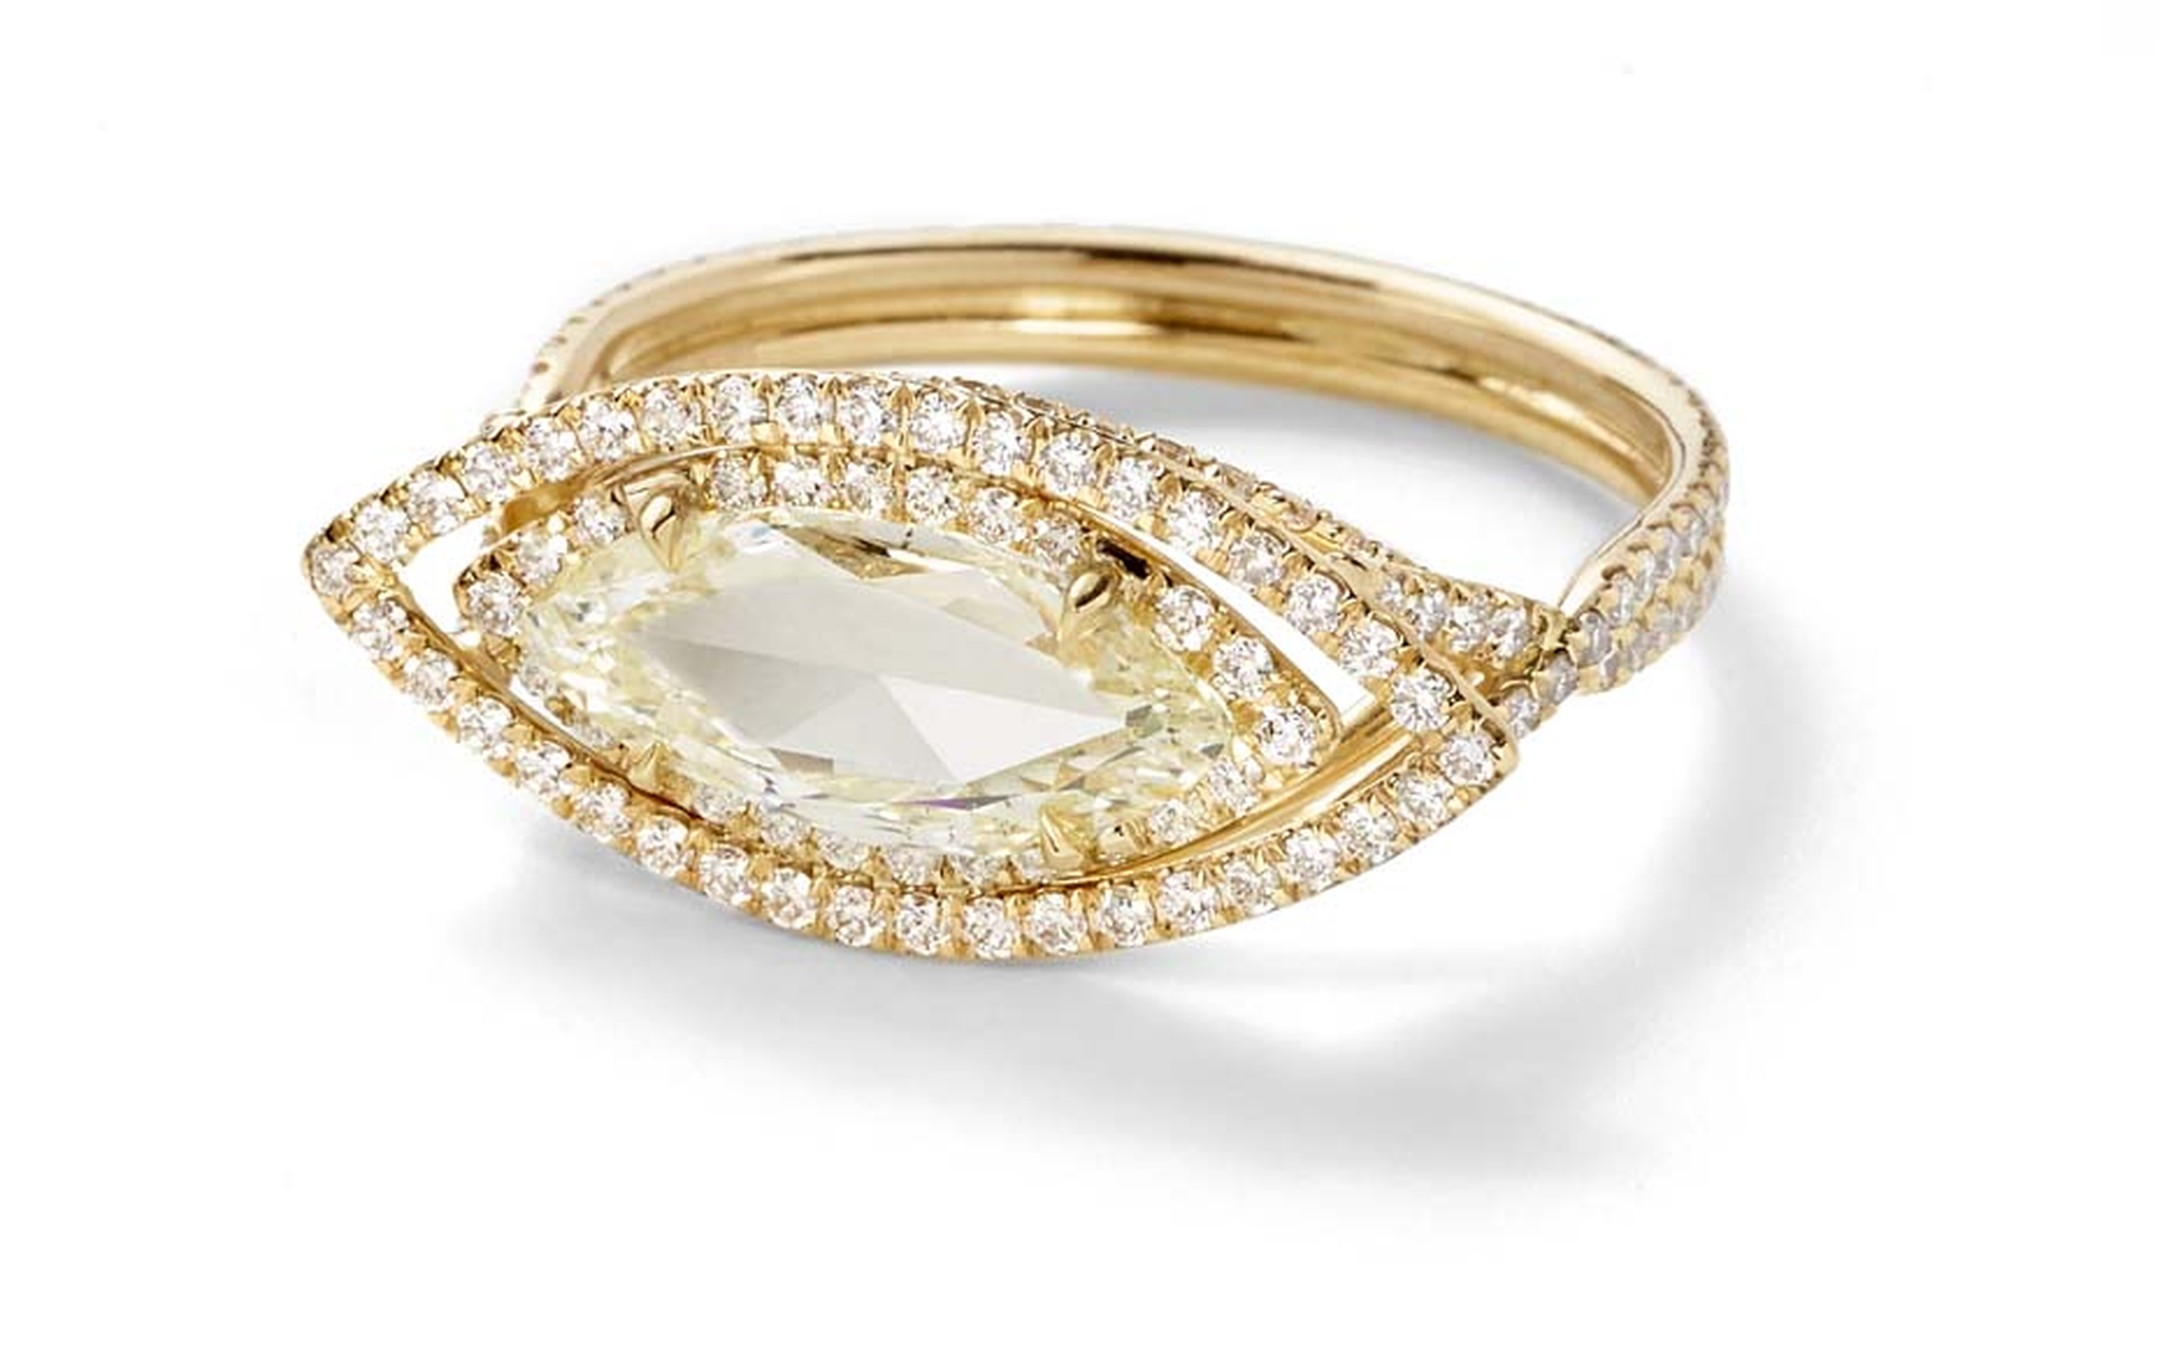 Monique Péan Mineraux engagement ring in recycled yellow gold, set with a light yellow marquise rose cut diamond and diamond pavé ($24,820)